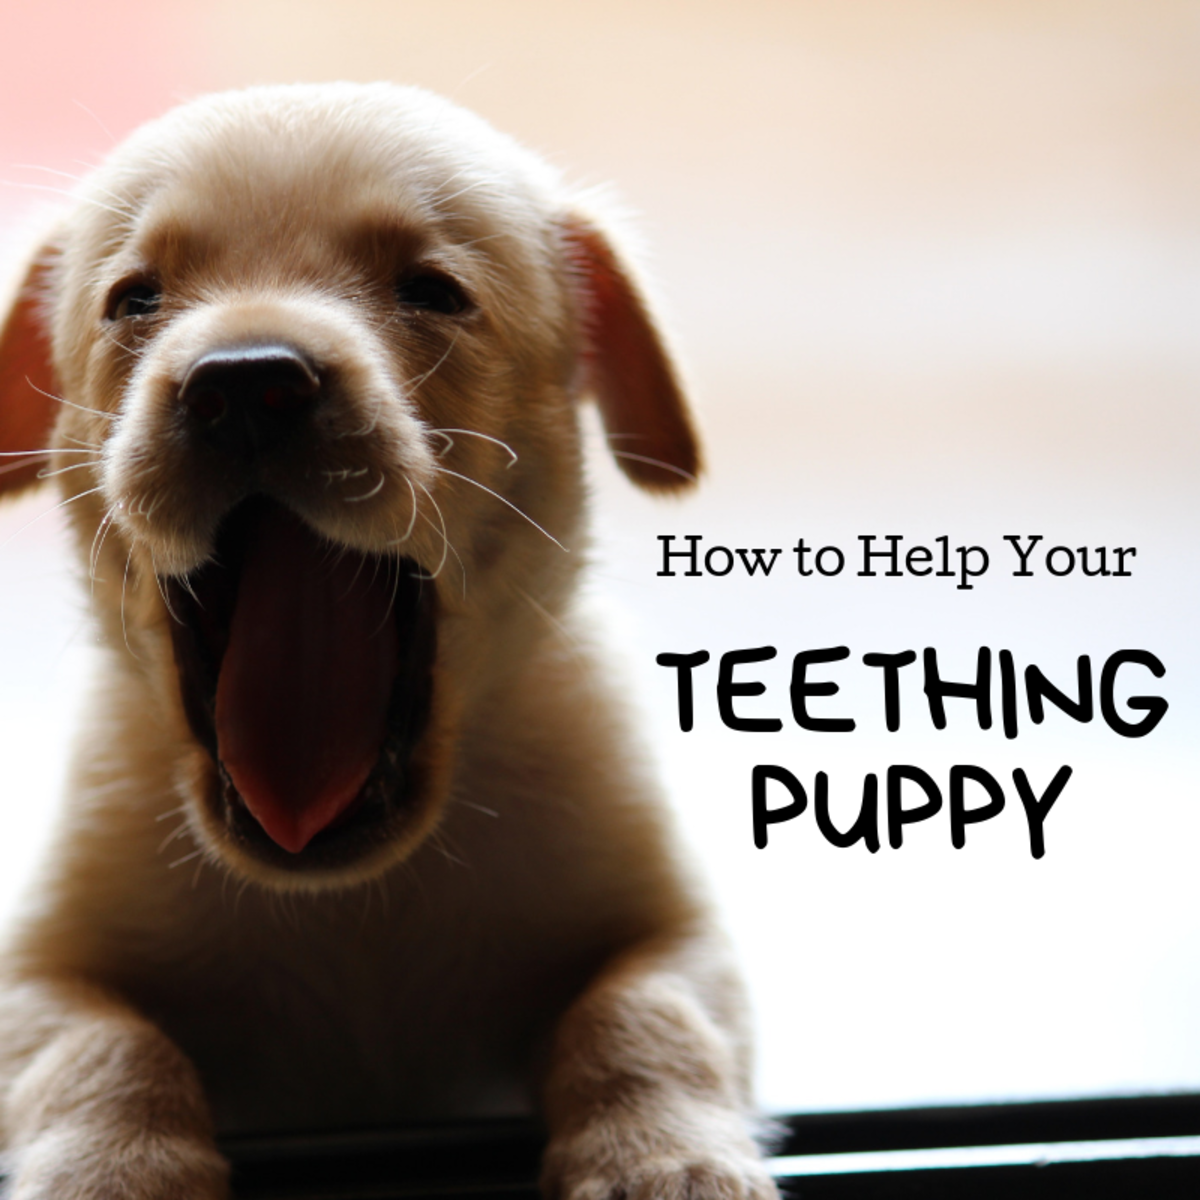 The teething process can be a pain to puppies and owners alike. Learn what you can do to keep your puppy happy and your hands and furniture safe.